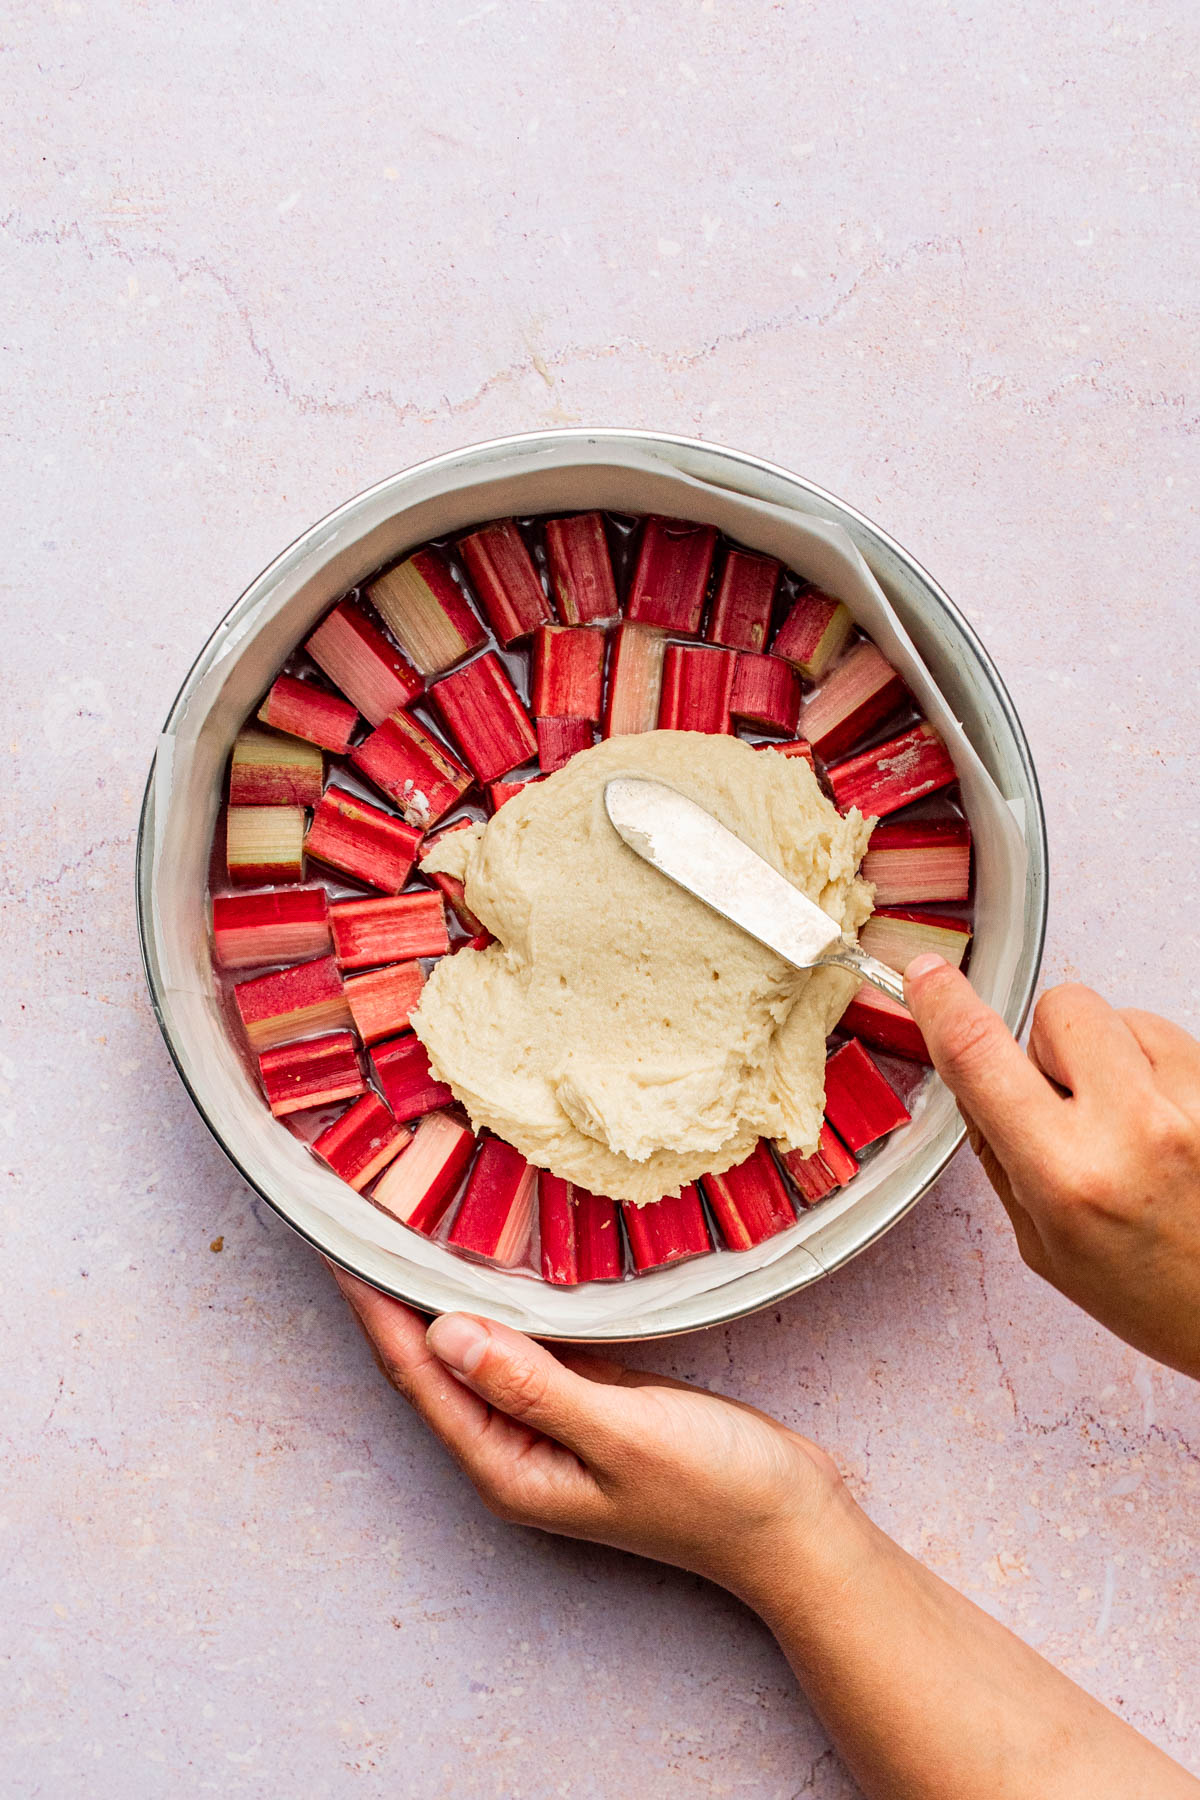 Cake batter being spread over rhubarb.